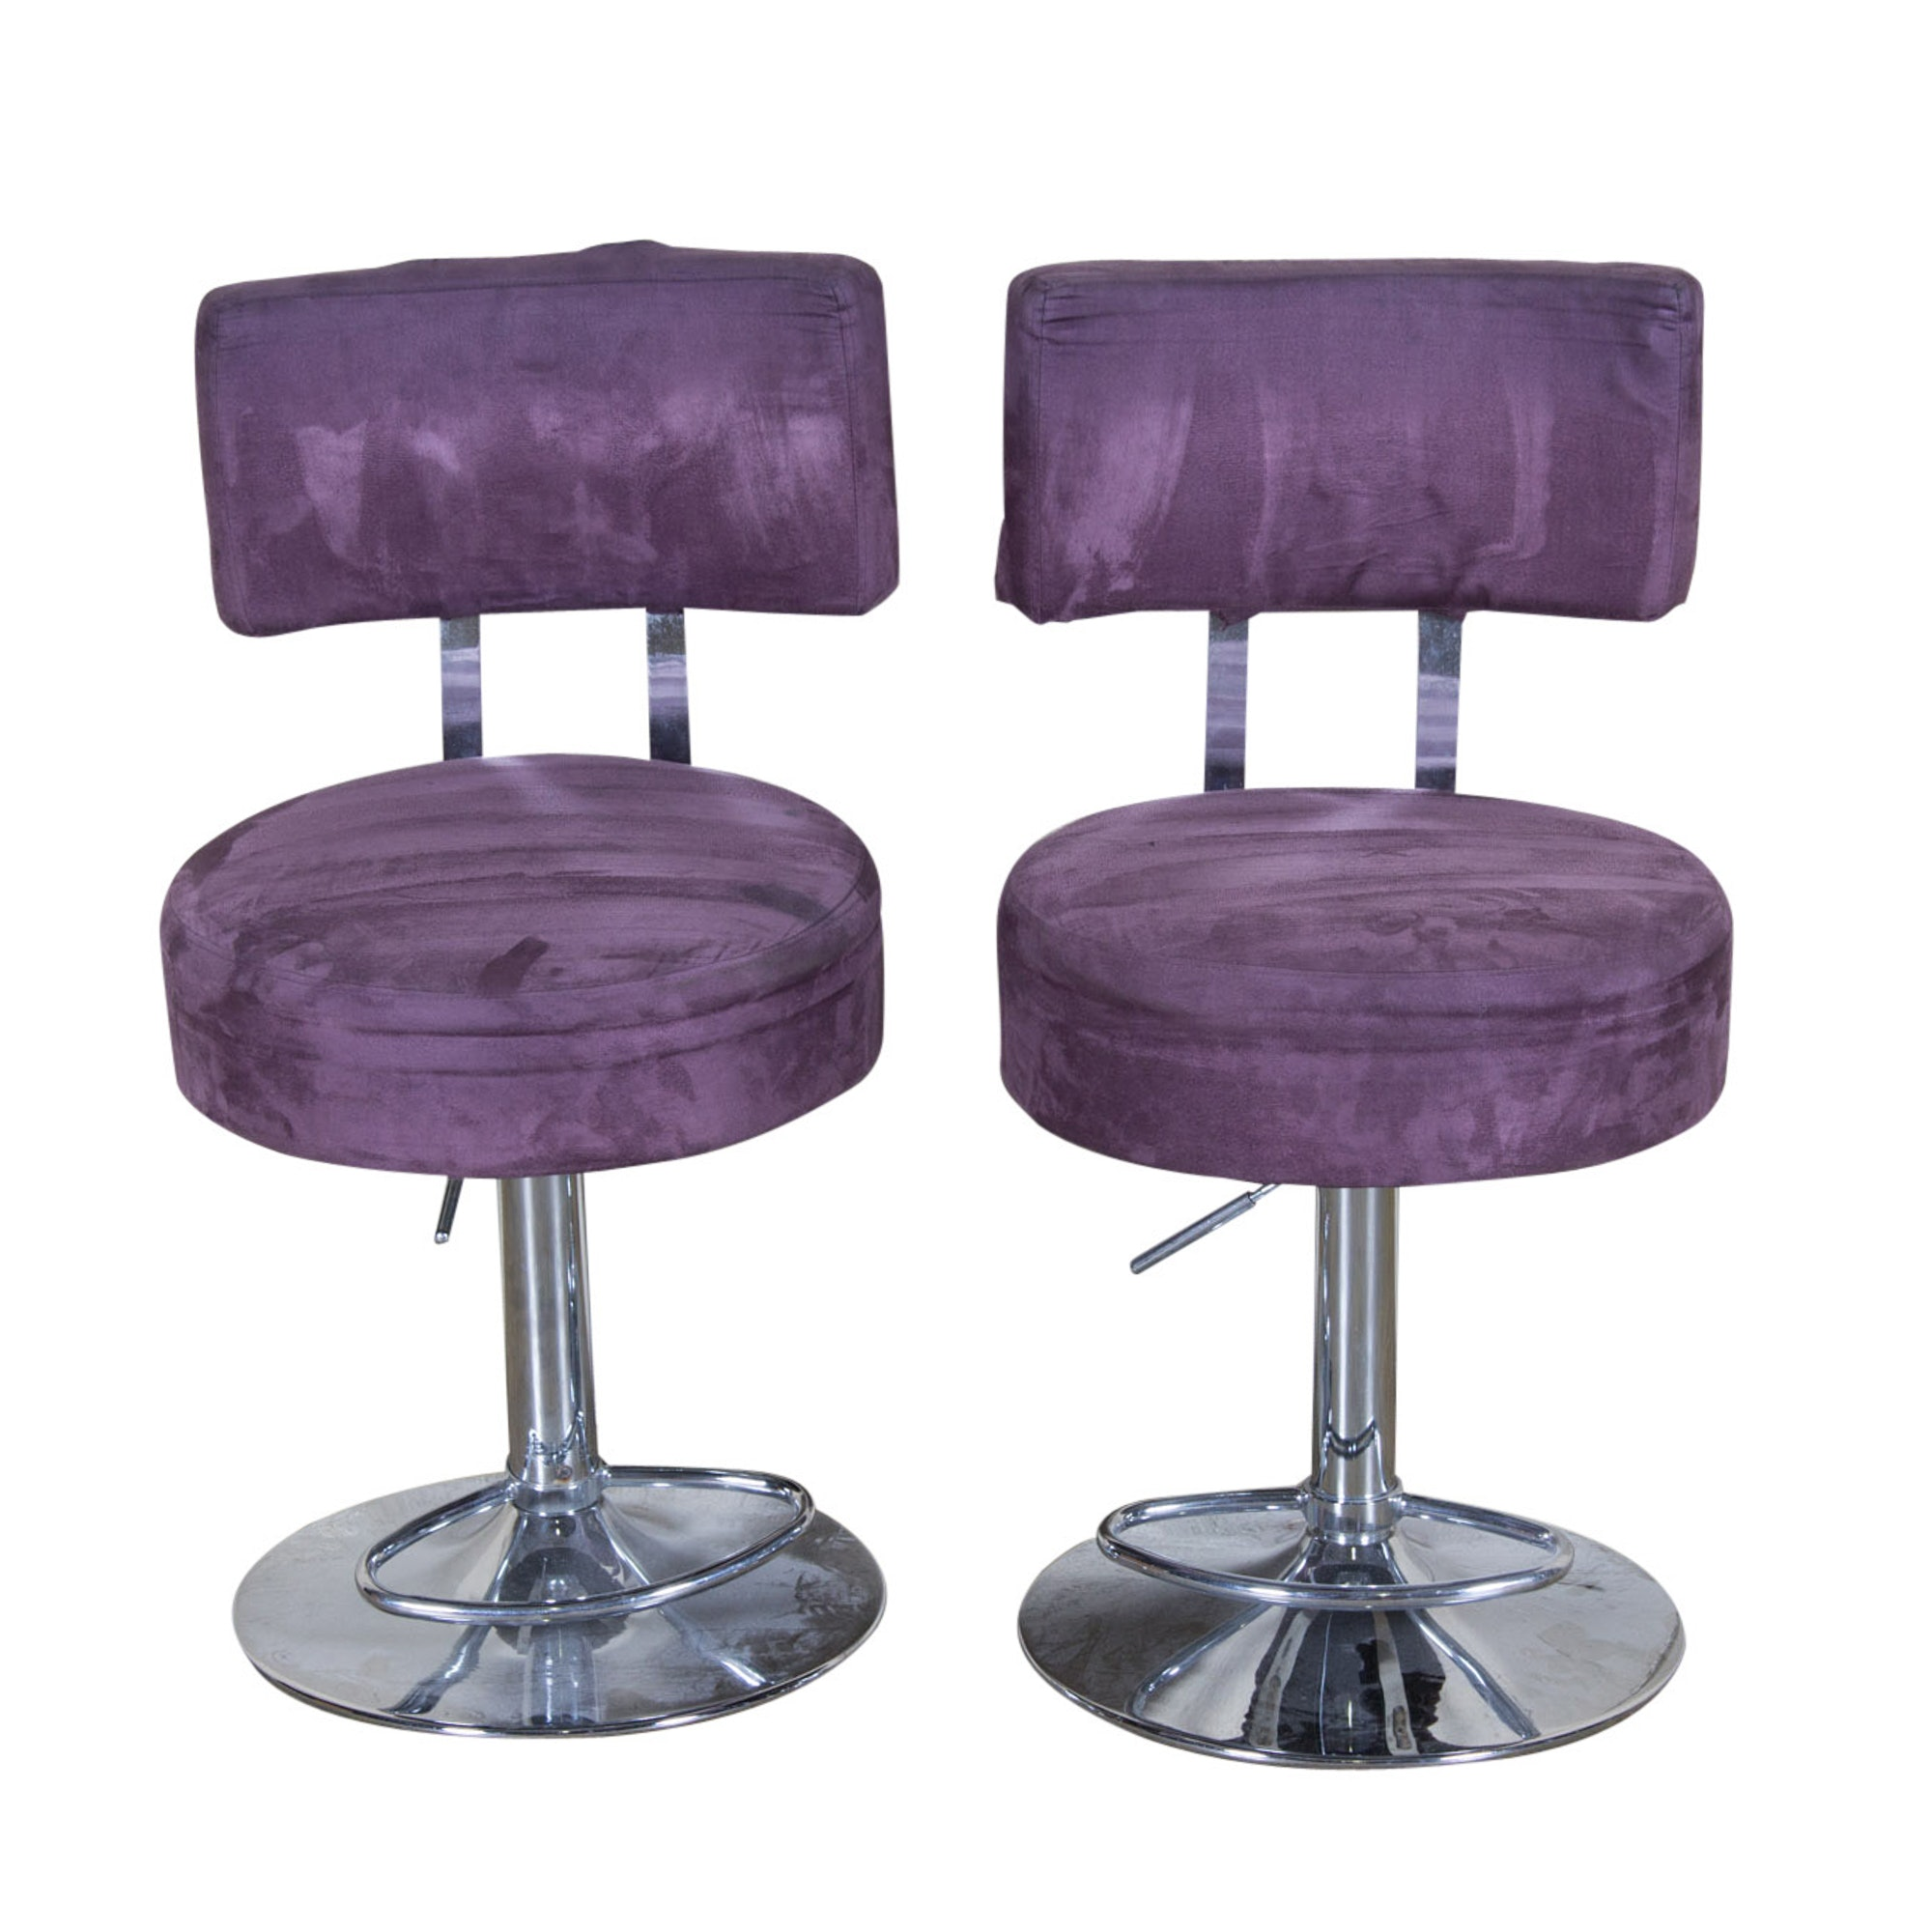 Two Microfiber Upholstered Purple Chairs